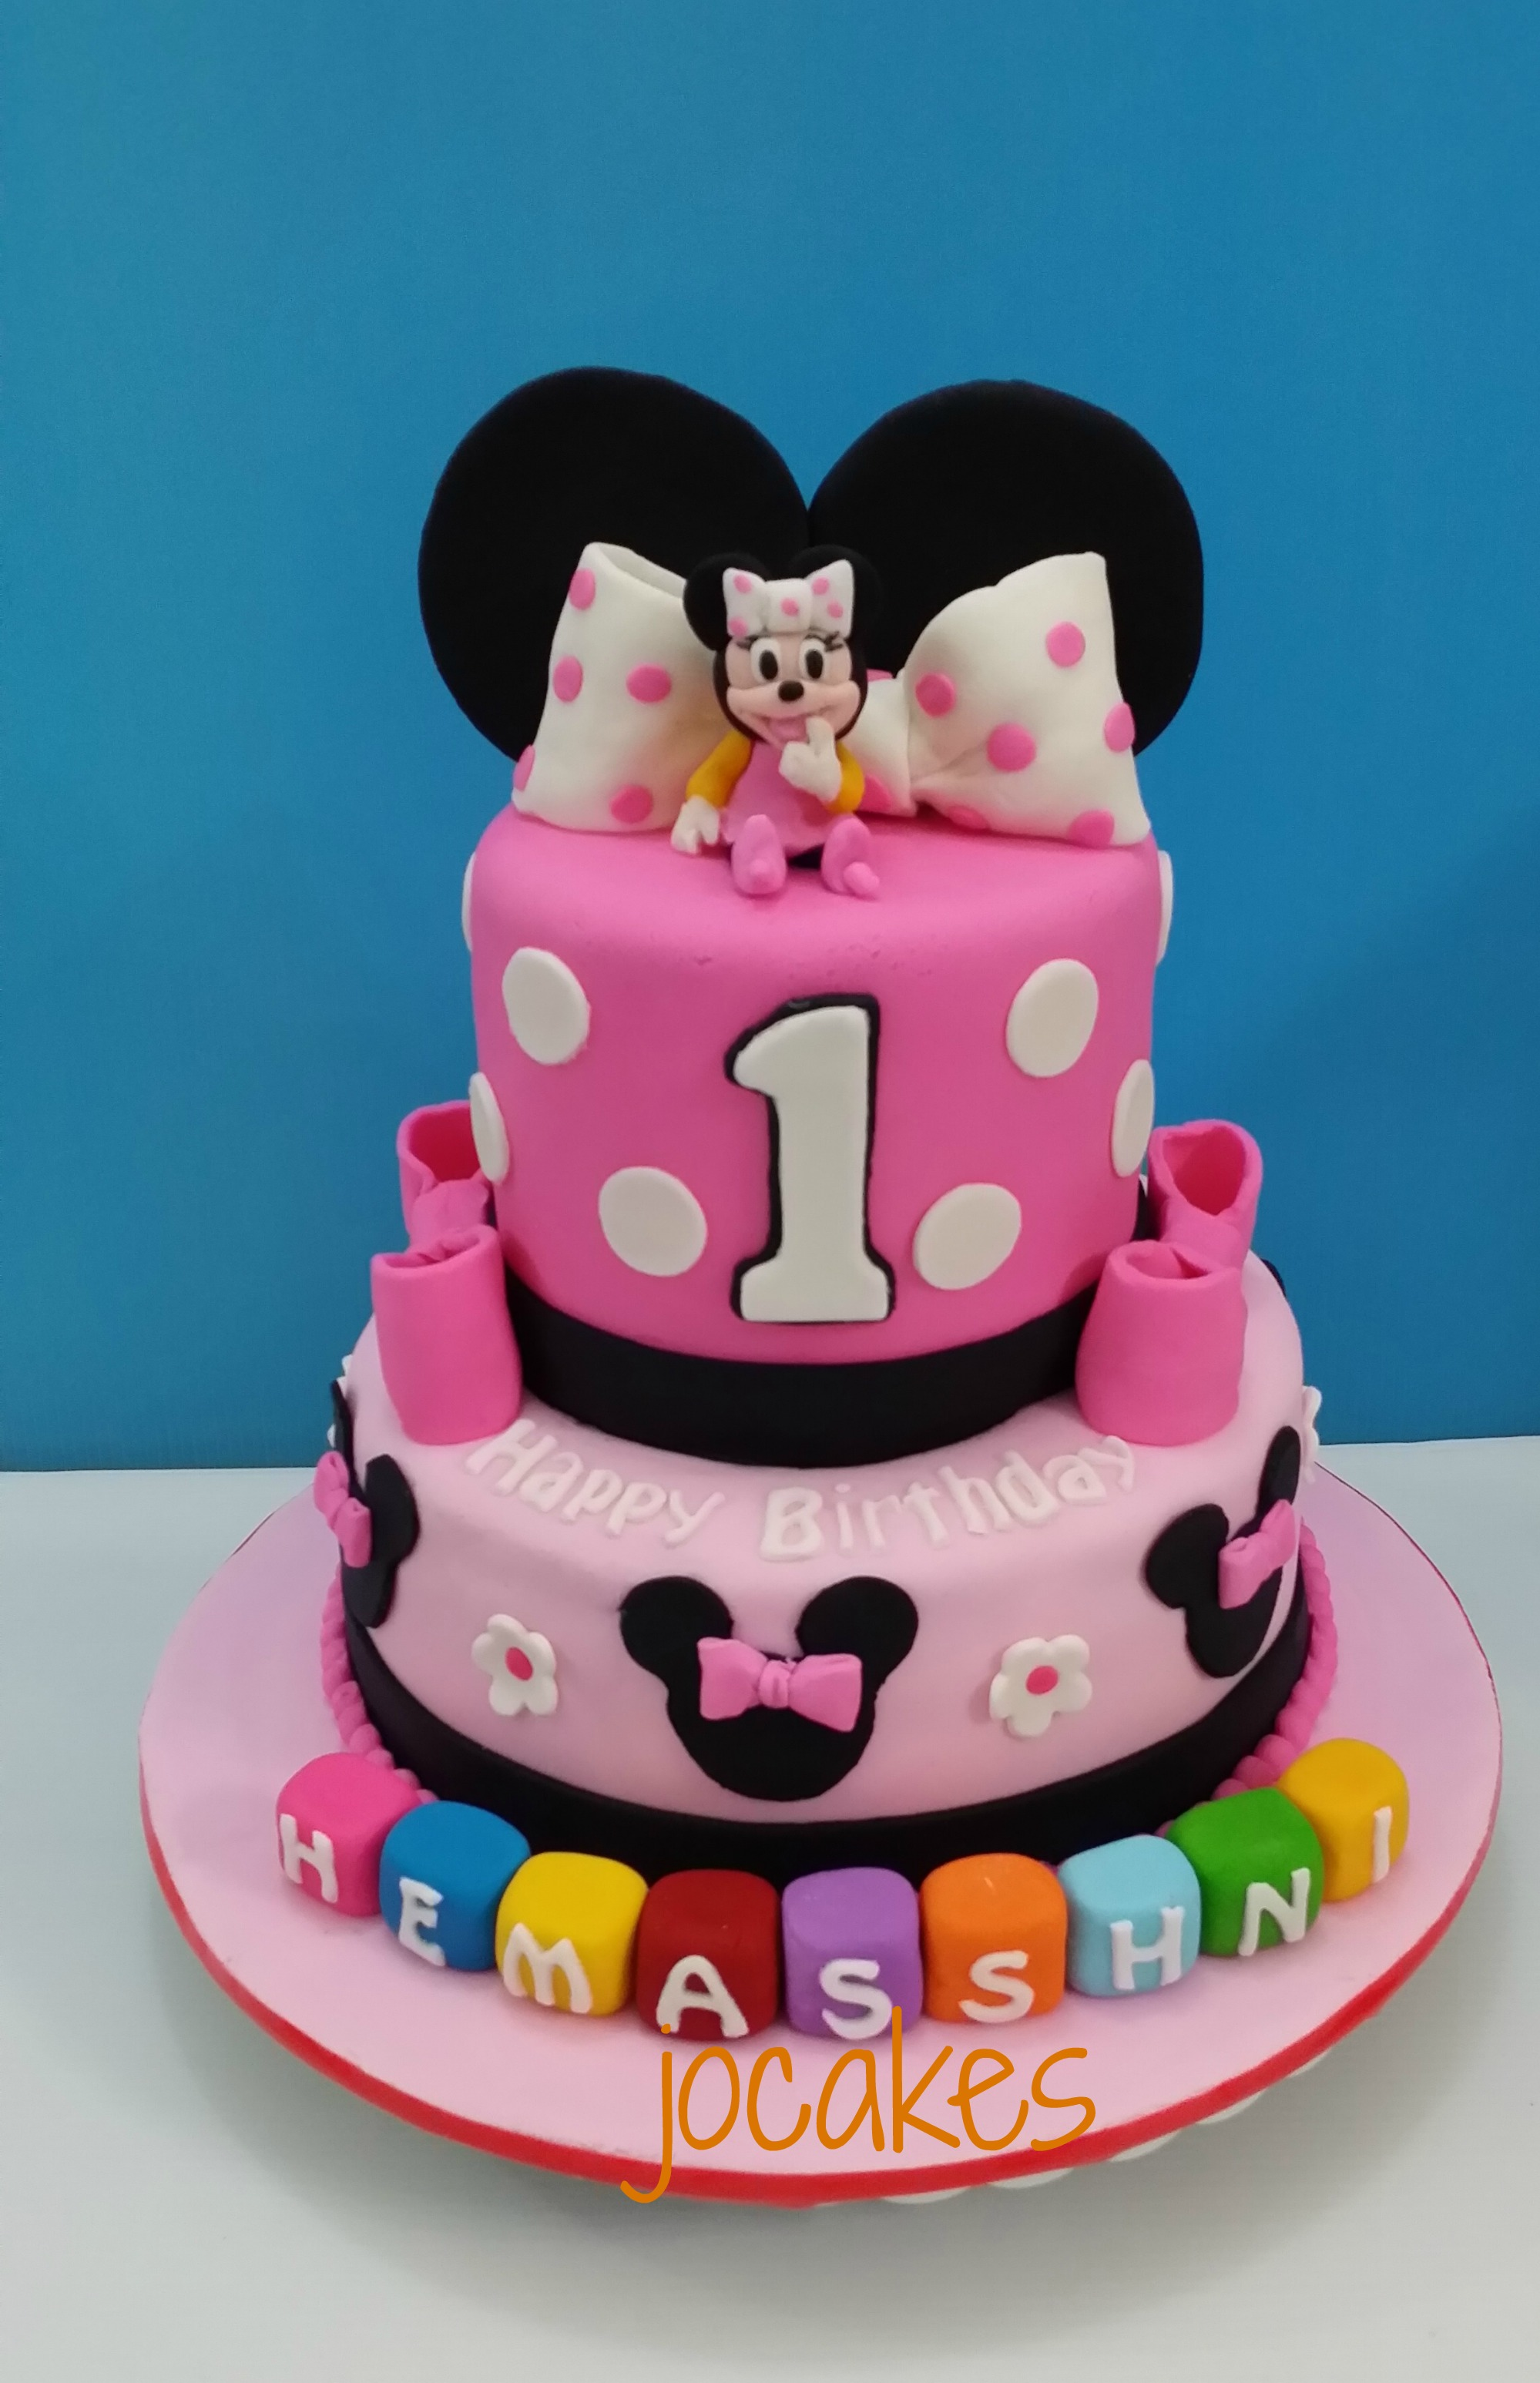 Minnie cake for 1 year old Hemasshni s birthday